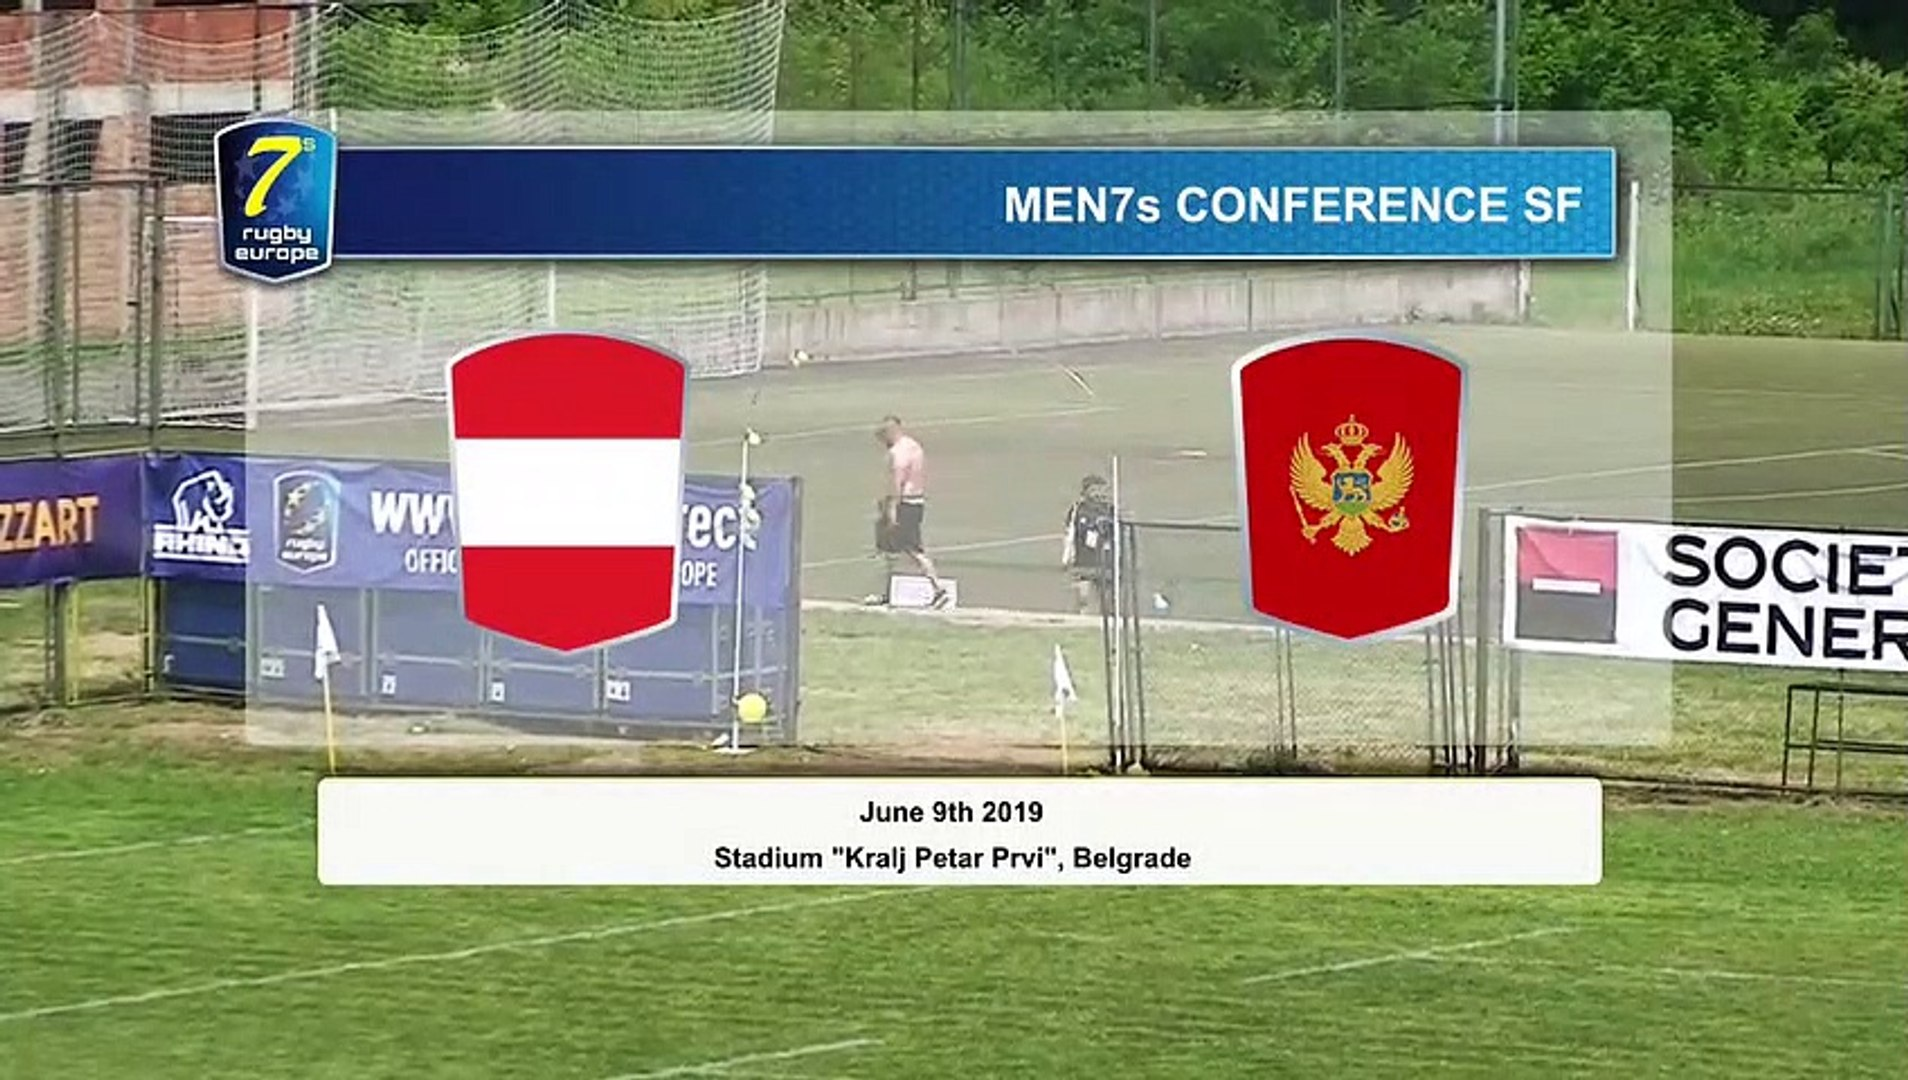 REPLAY - SEMIFINALS GAMES - RUGBY EUROPE MEN 7s CONFERENCE 2019 - BELGRADE 2019